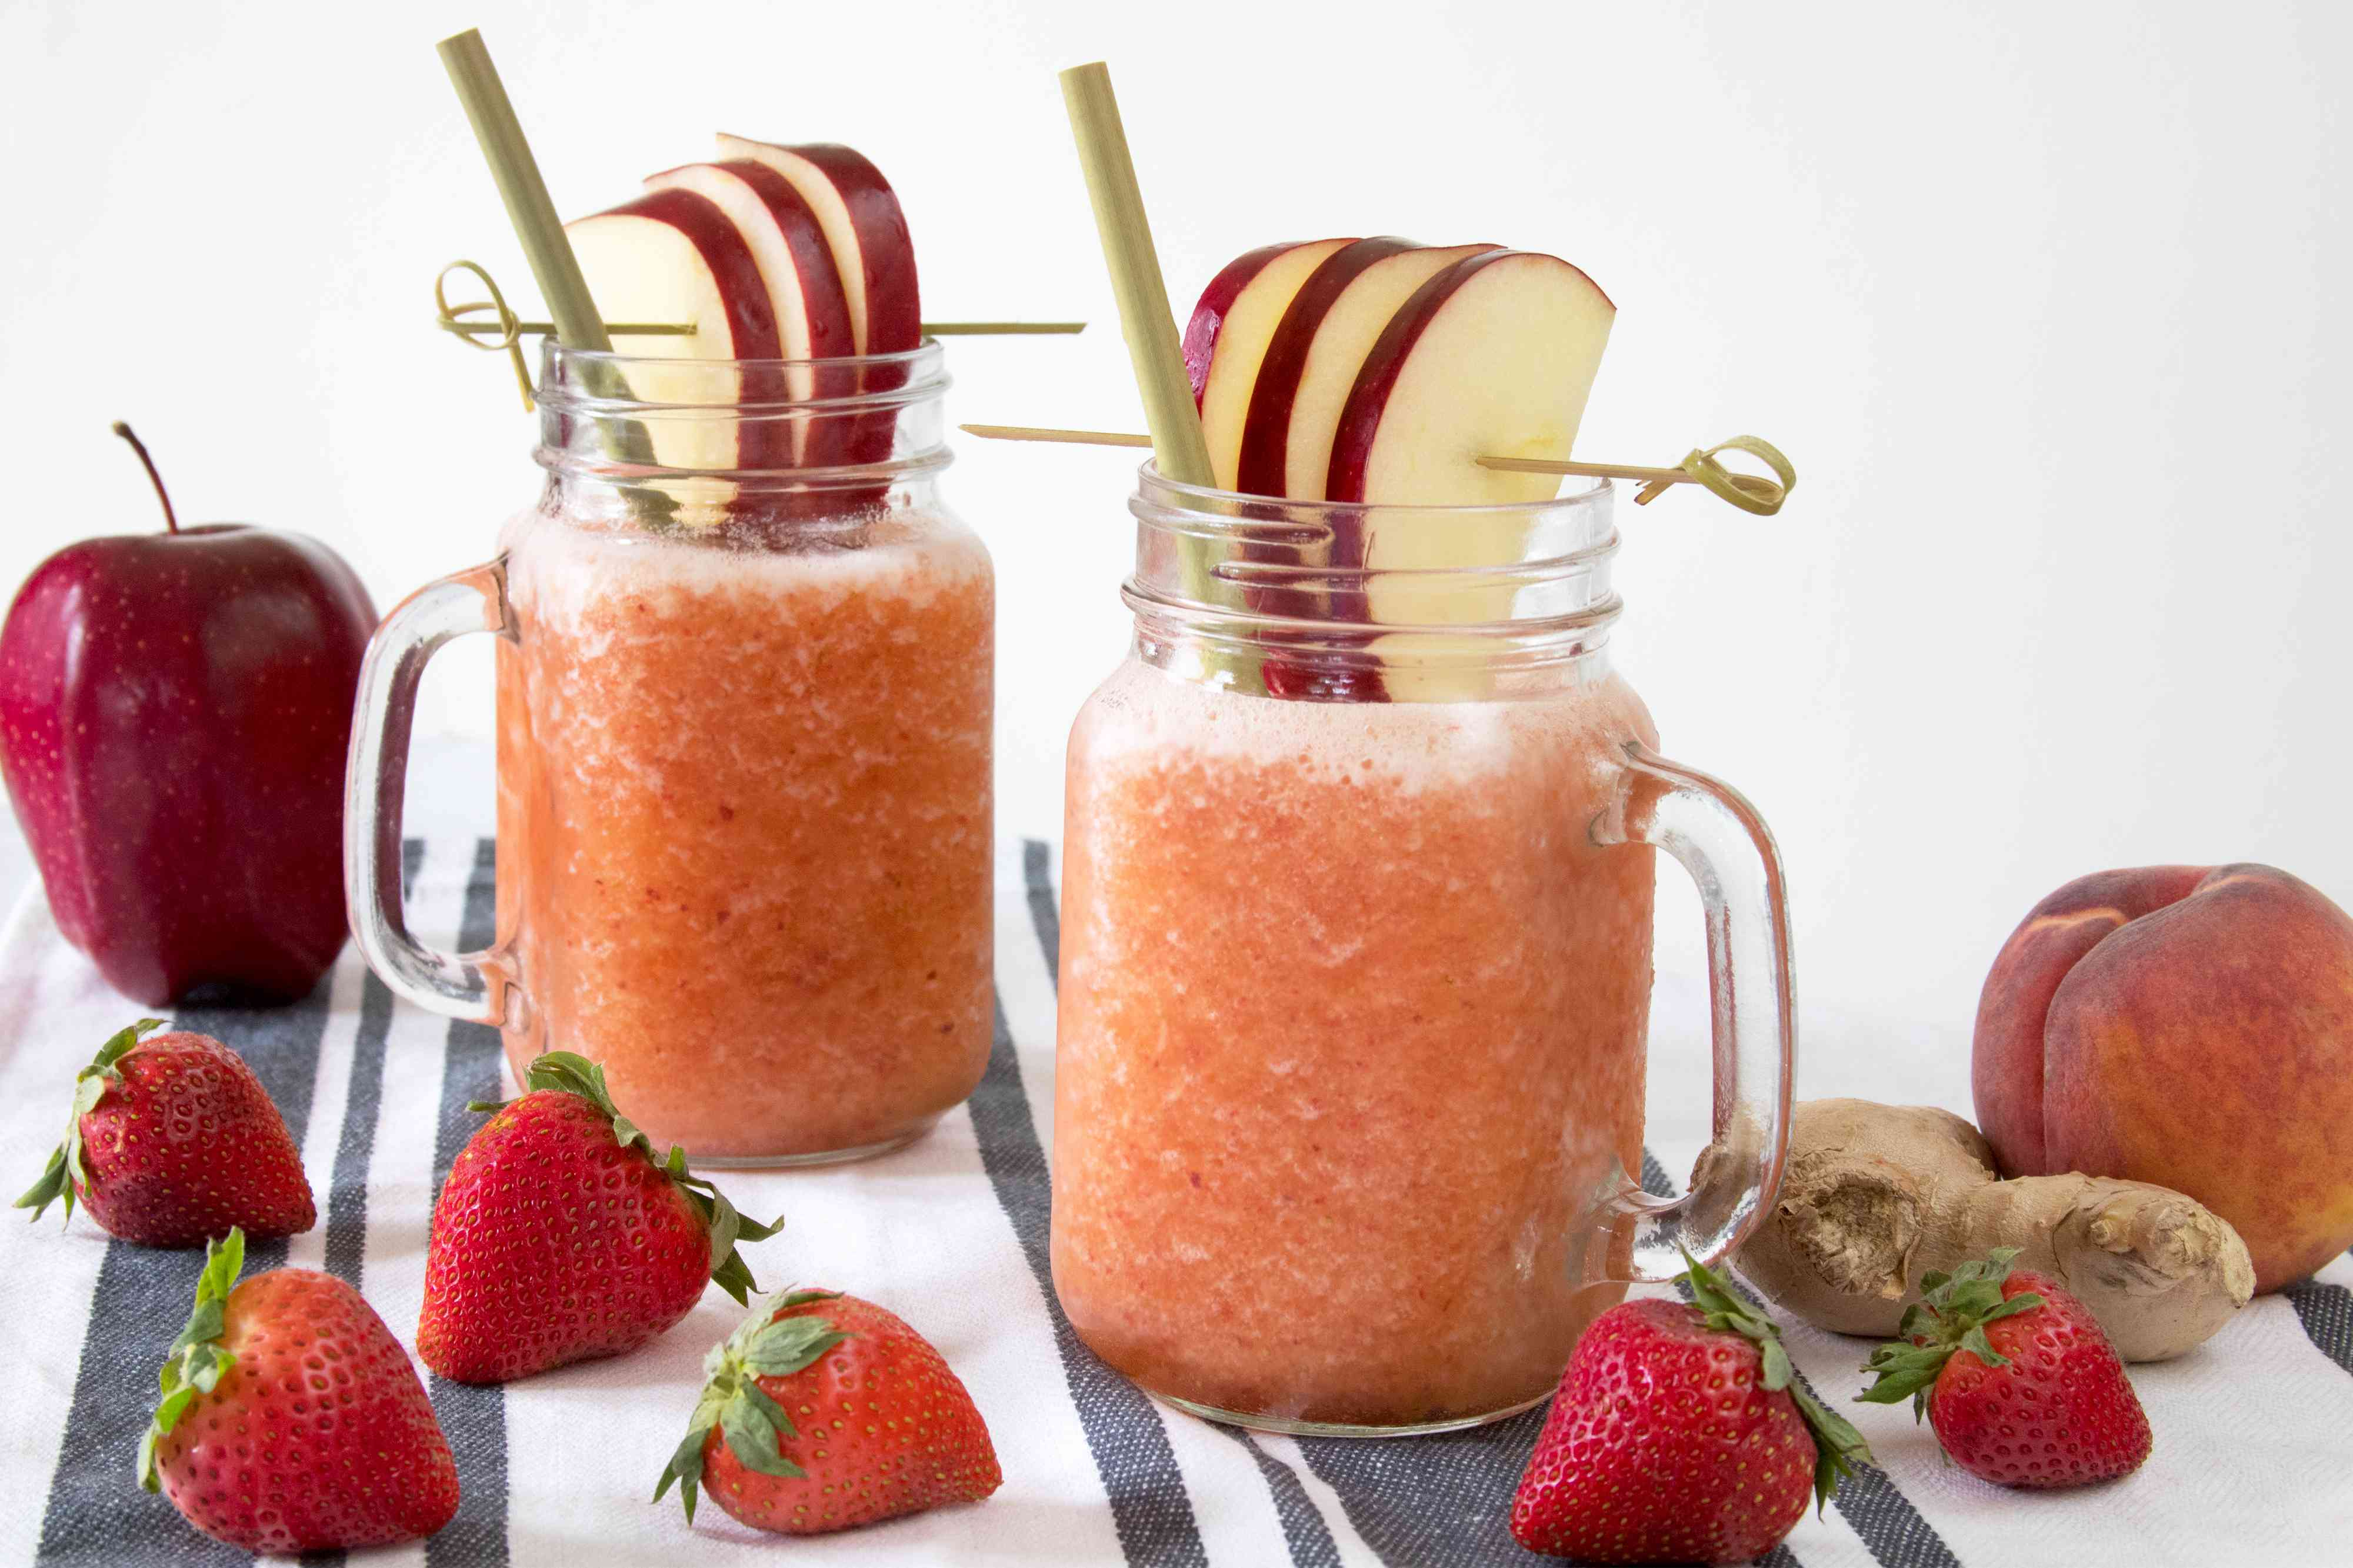 May Day Cocktail - Blended Fruit Drink